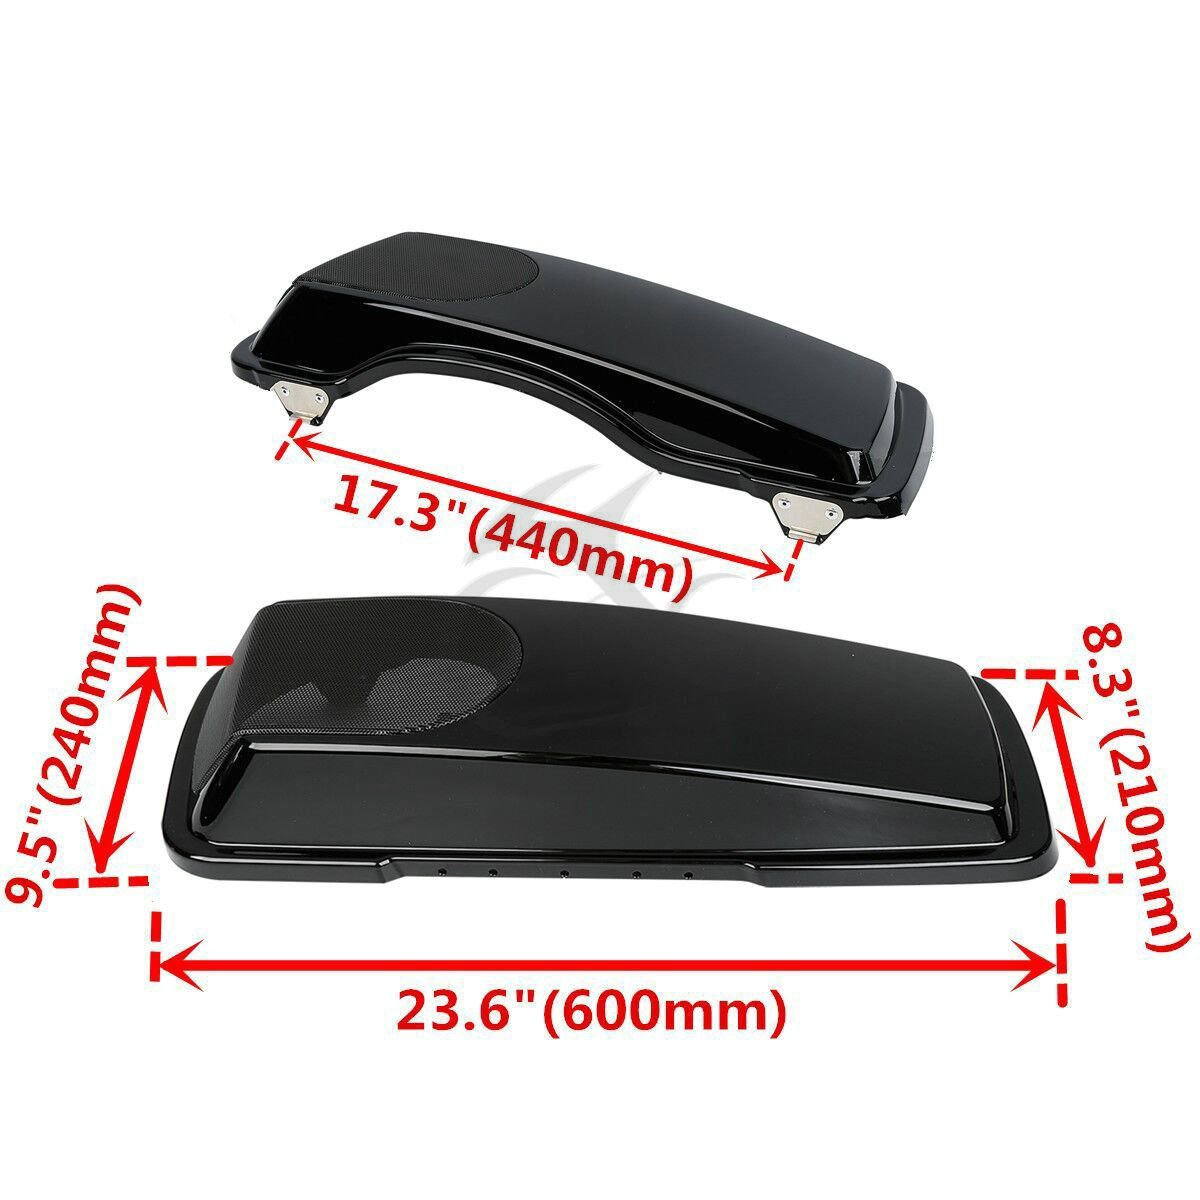 XFMT 5x7 Saddlebag Speaker Lids Compatible with Harley Electra Glide Road King Ultra CVO 1993-2013 2 ABS Plastic Mesh Covers